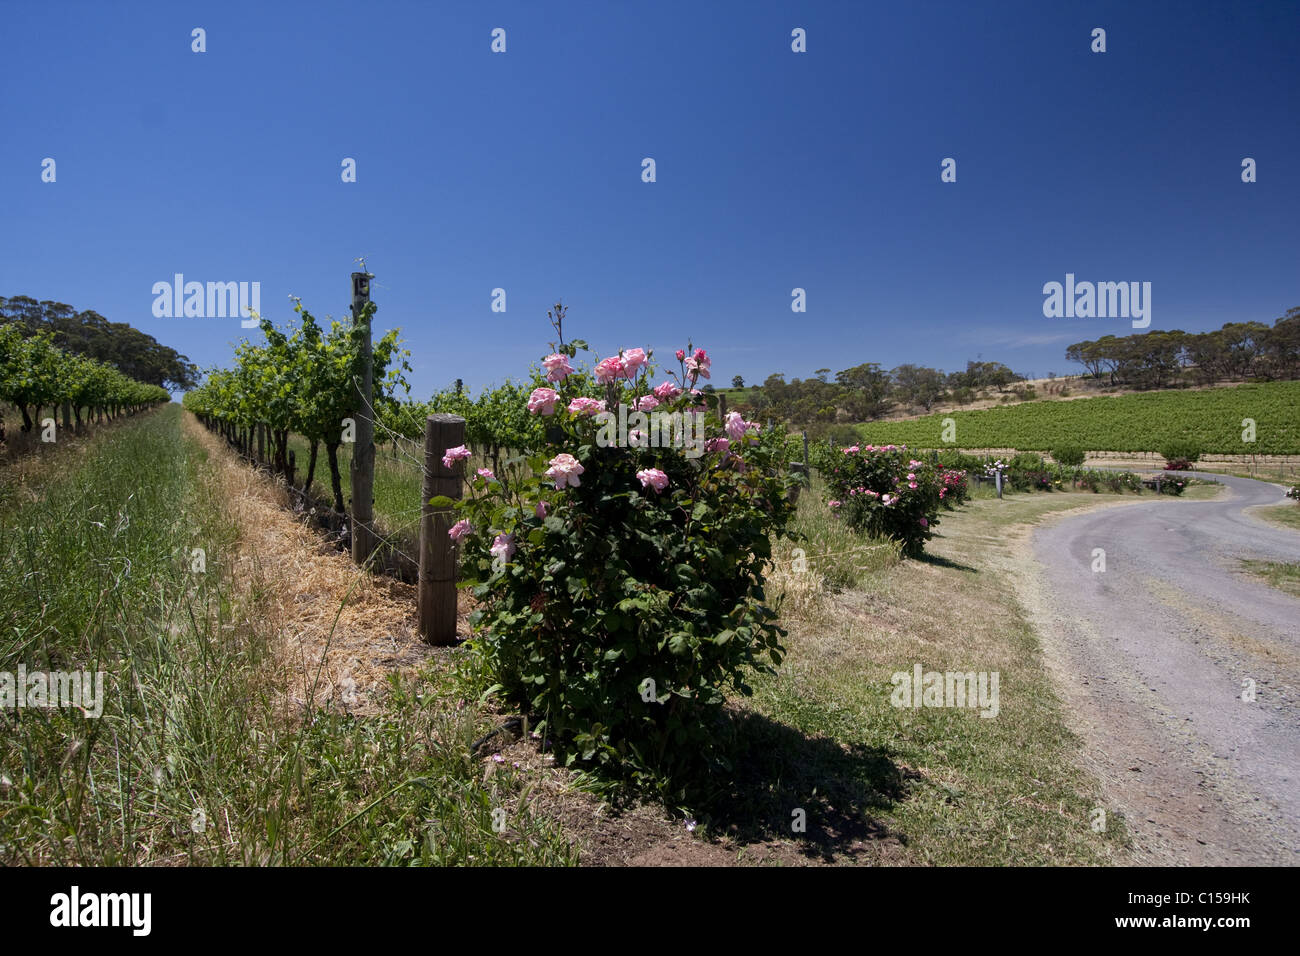 Rows of young grapevines growing in a vineyard in the McLaren Vale wine growing area of South Australia. - Stock Image